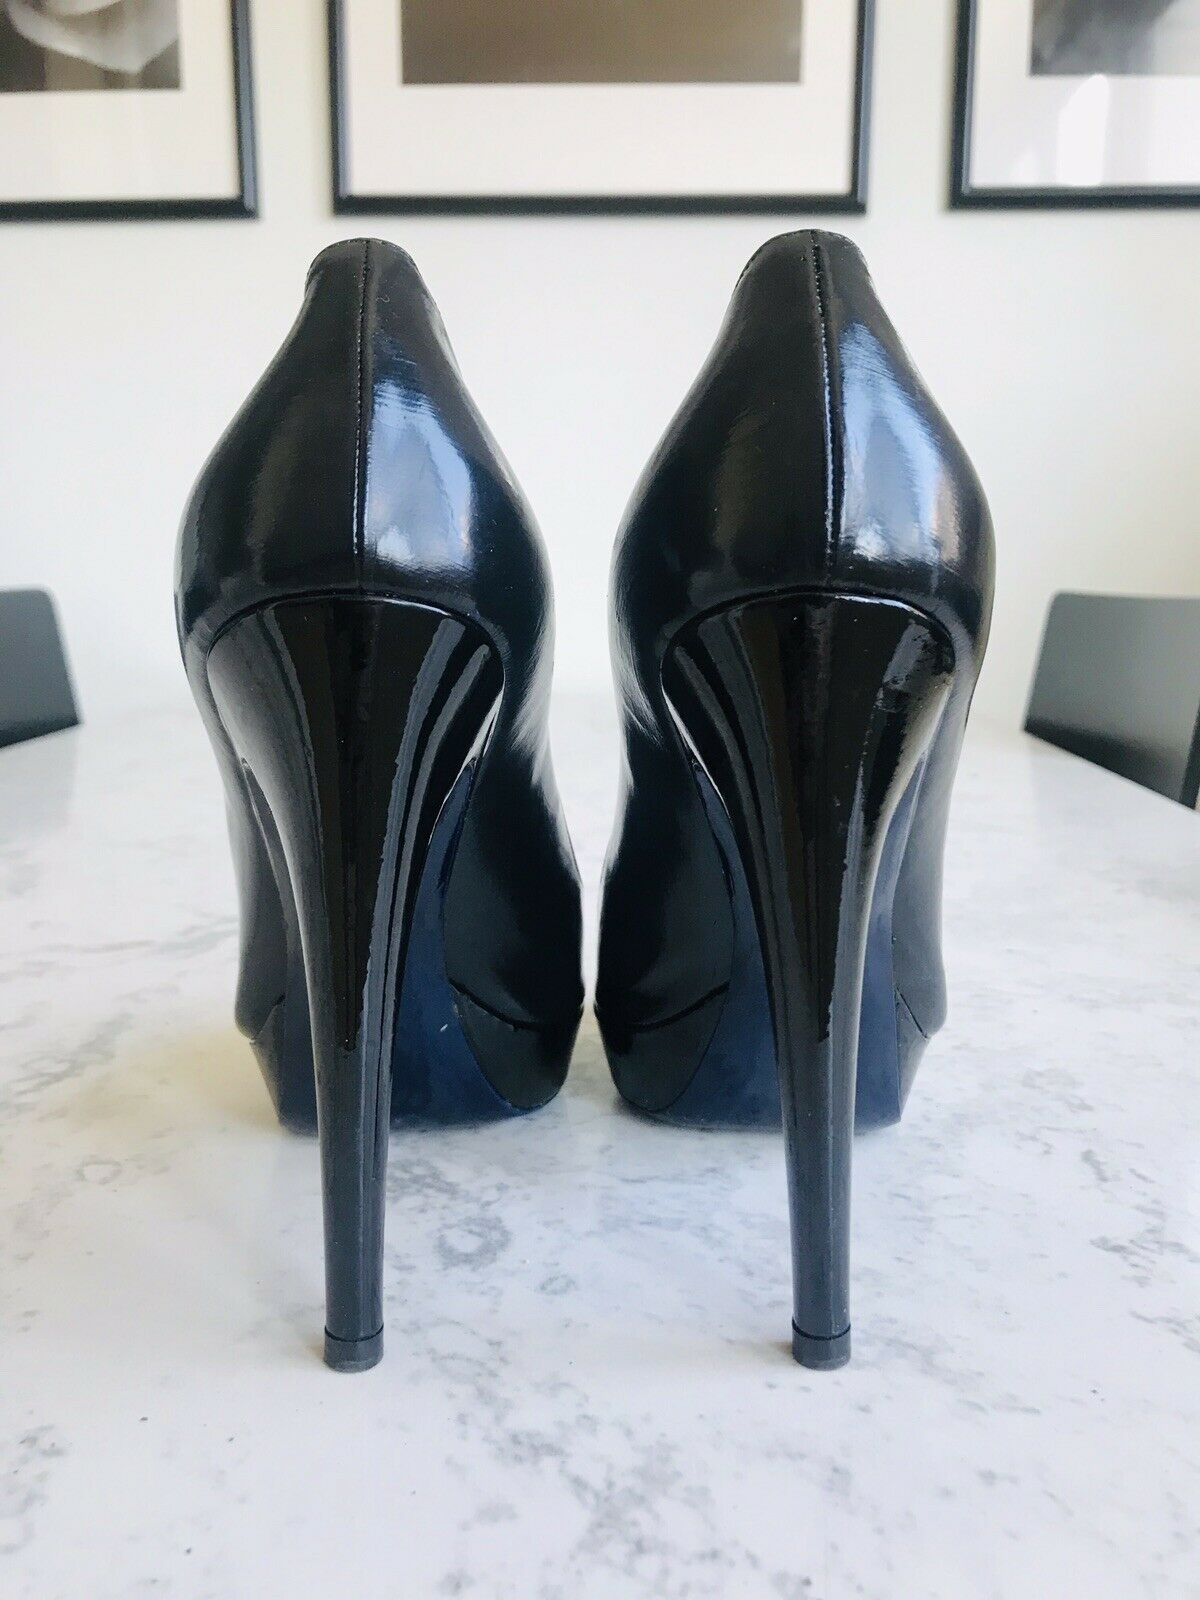 "Miu Miu Black Patent Leather Platform Pumps Heels shoes Sz 37.5   7 5"" Heel"